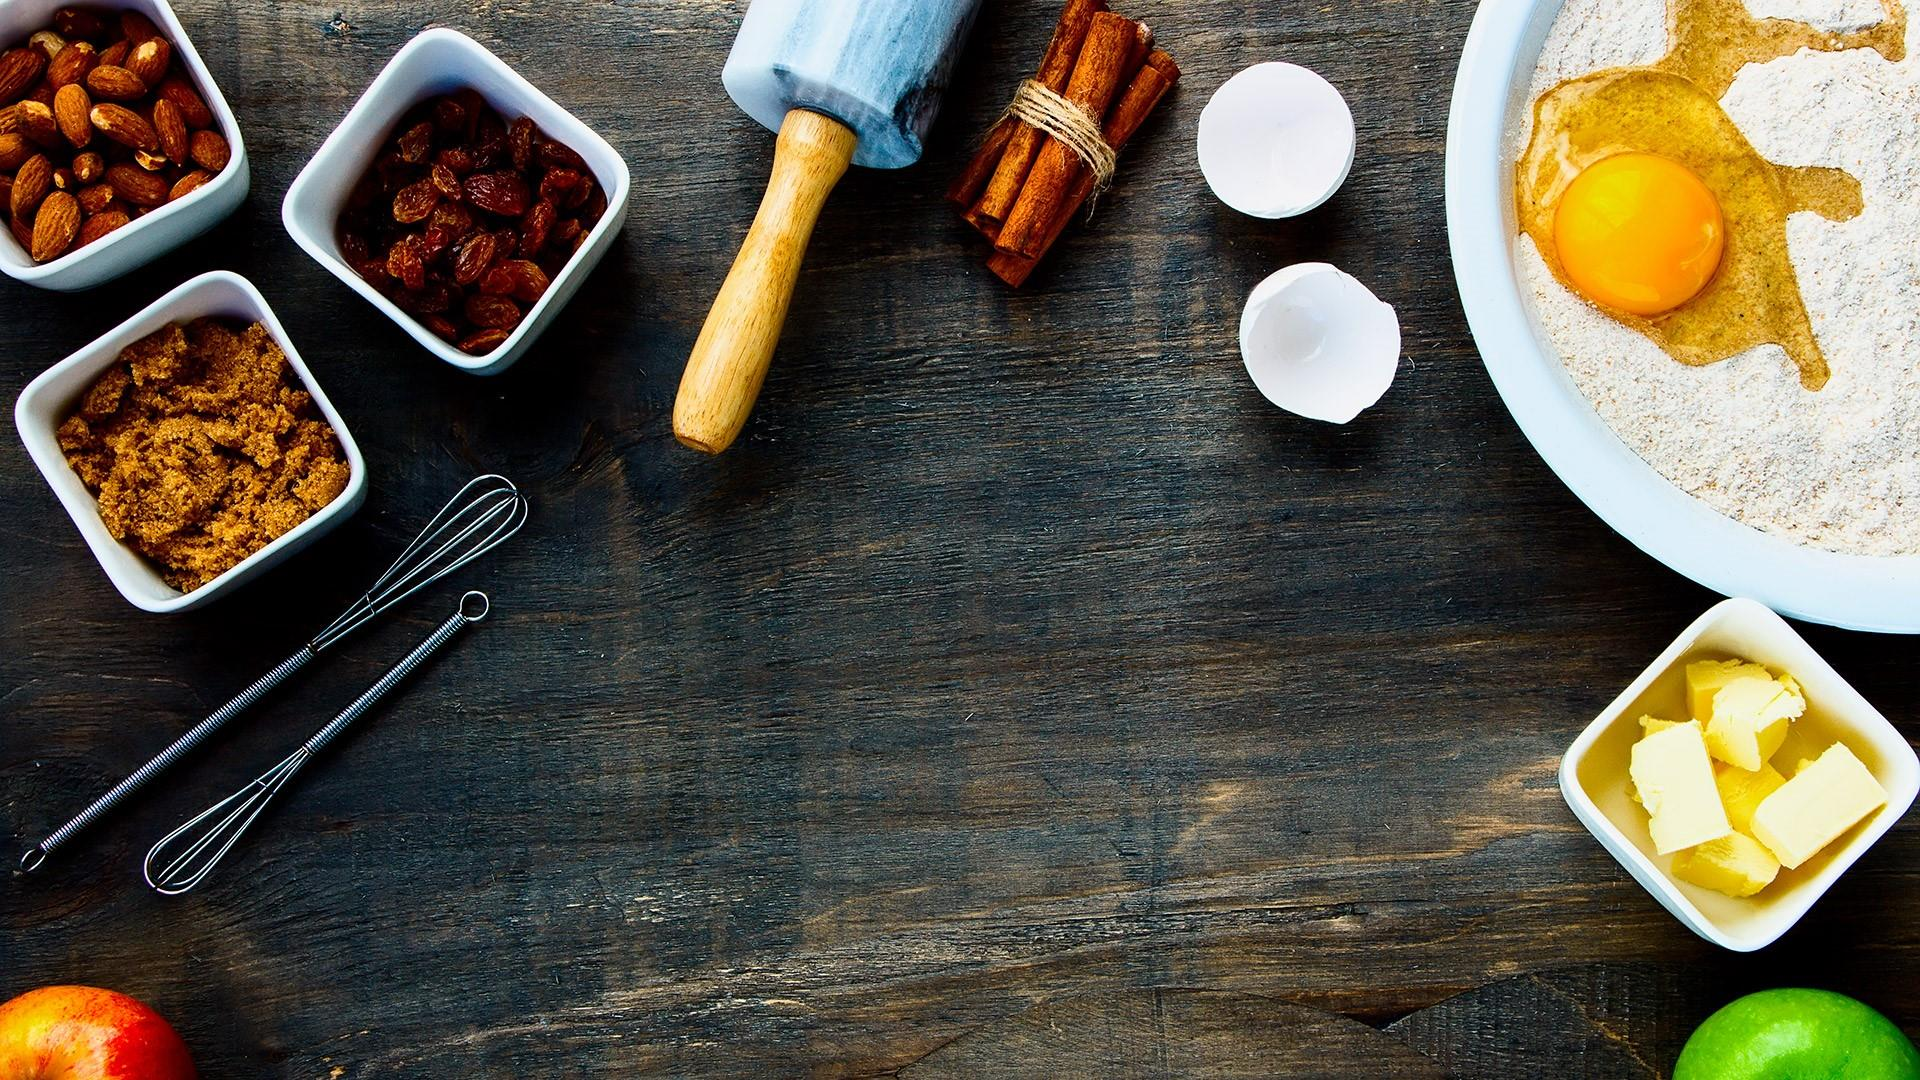 Cooking table wallpaper